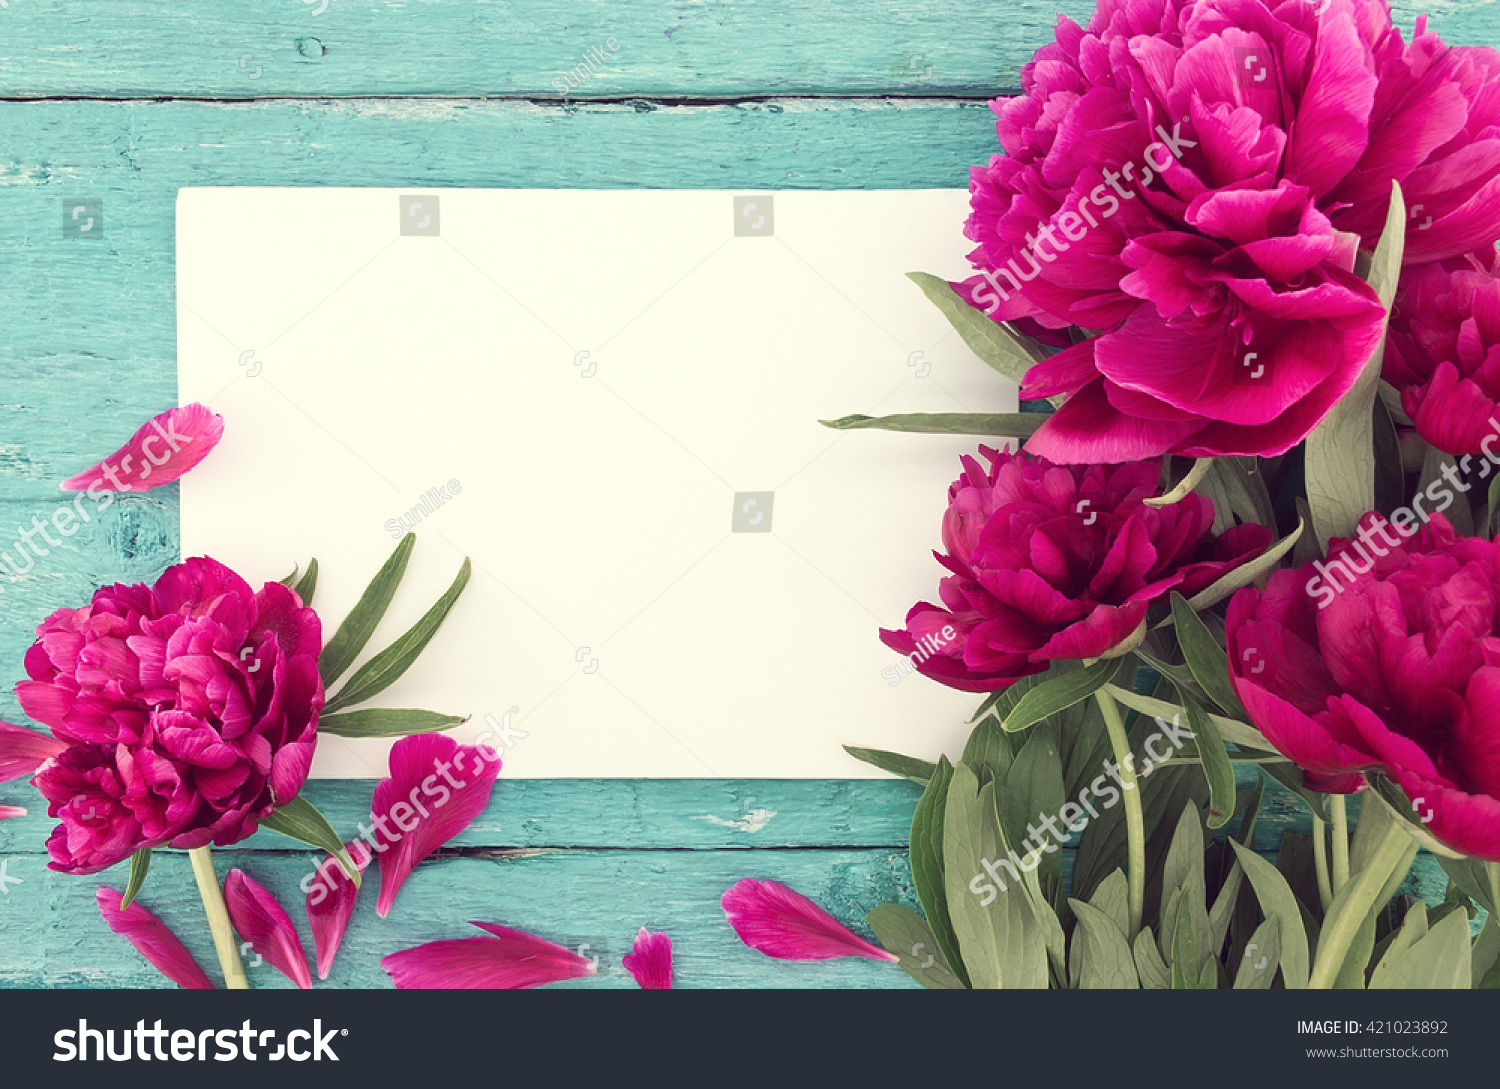 Red Peony Flowers On Turquoise Rustic Stock Photo Edit Now